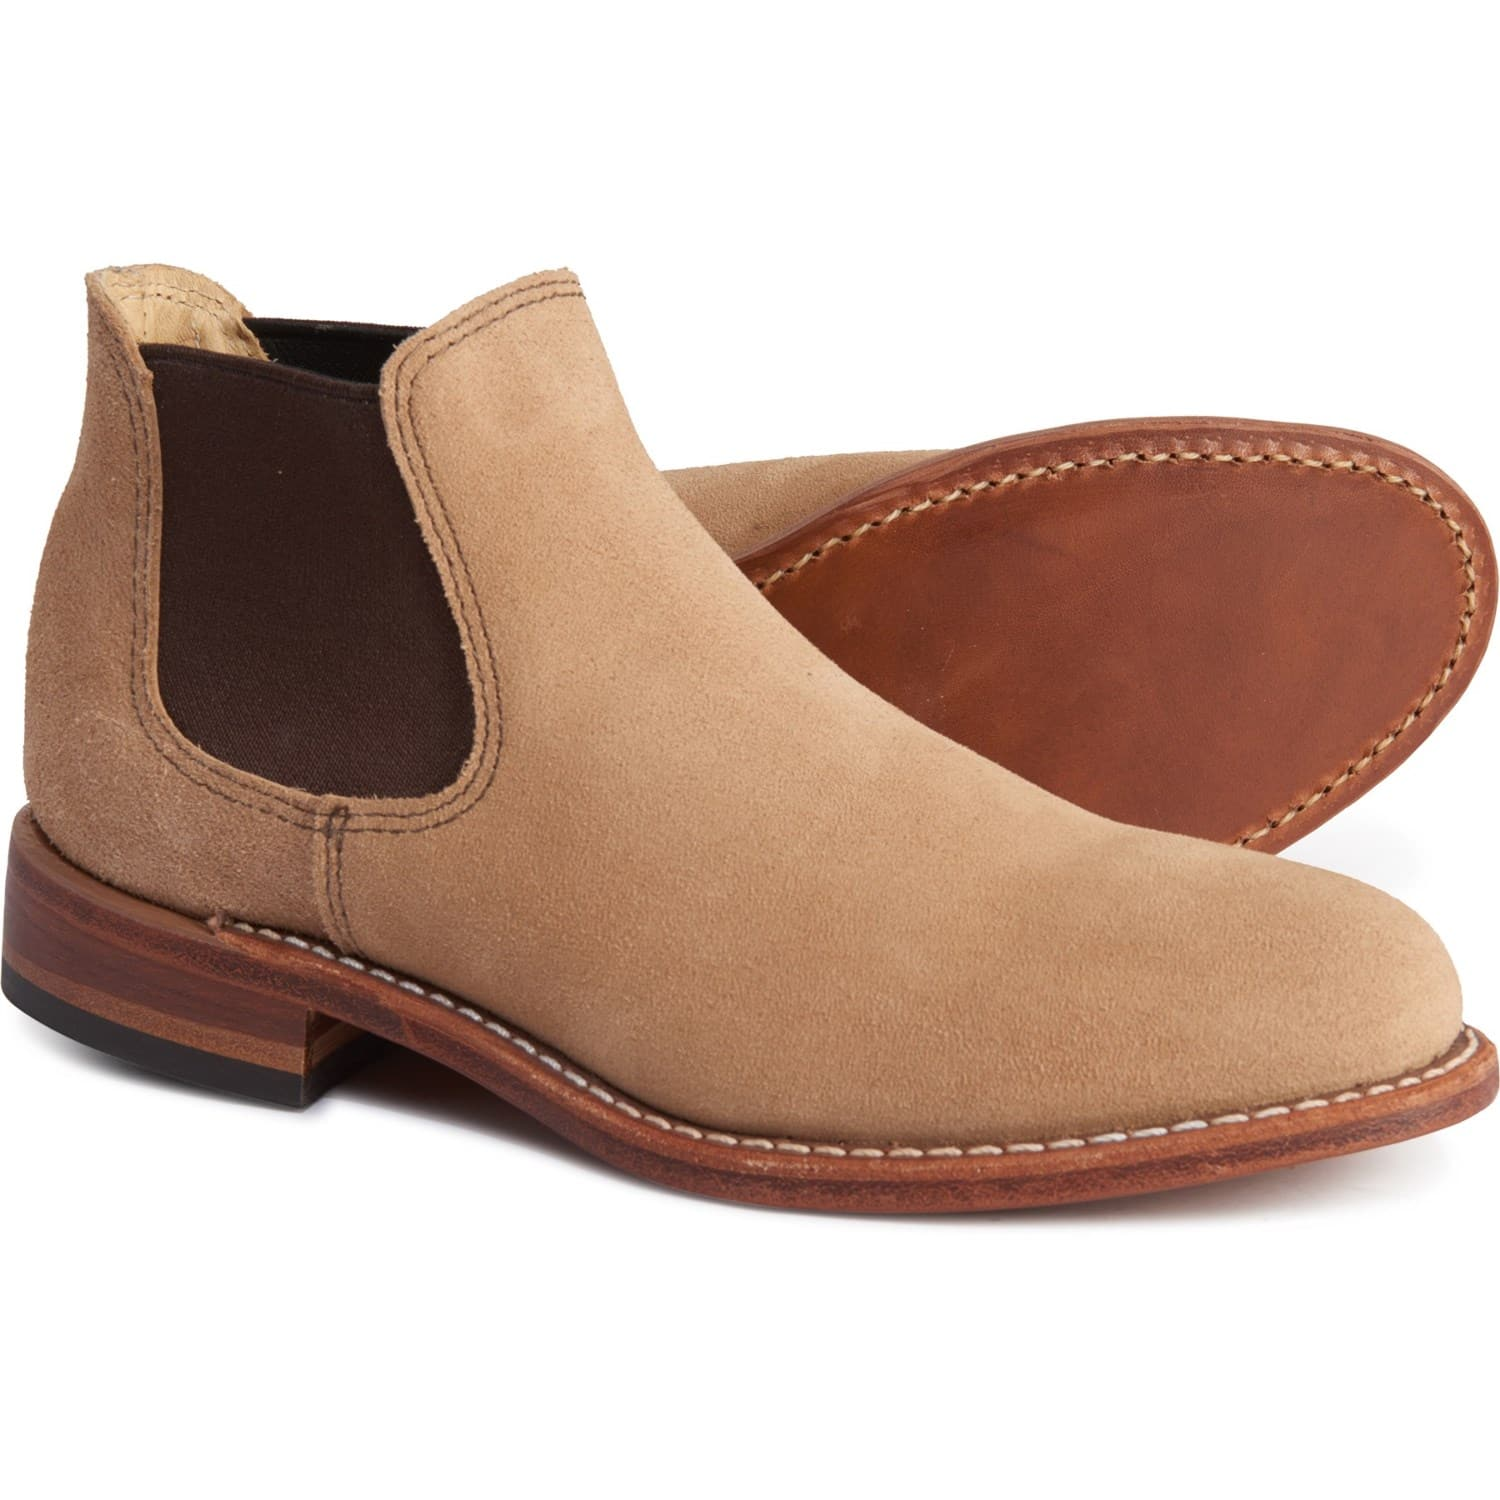 Red Wing Women's Carol Boot - Tan Suede - Many Sizes $159